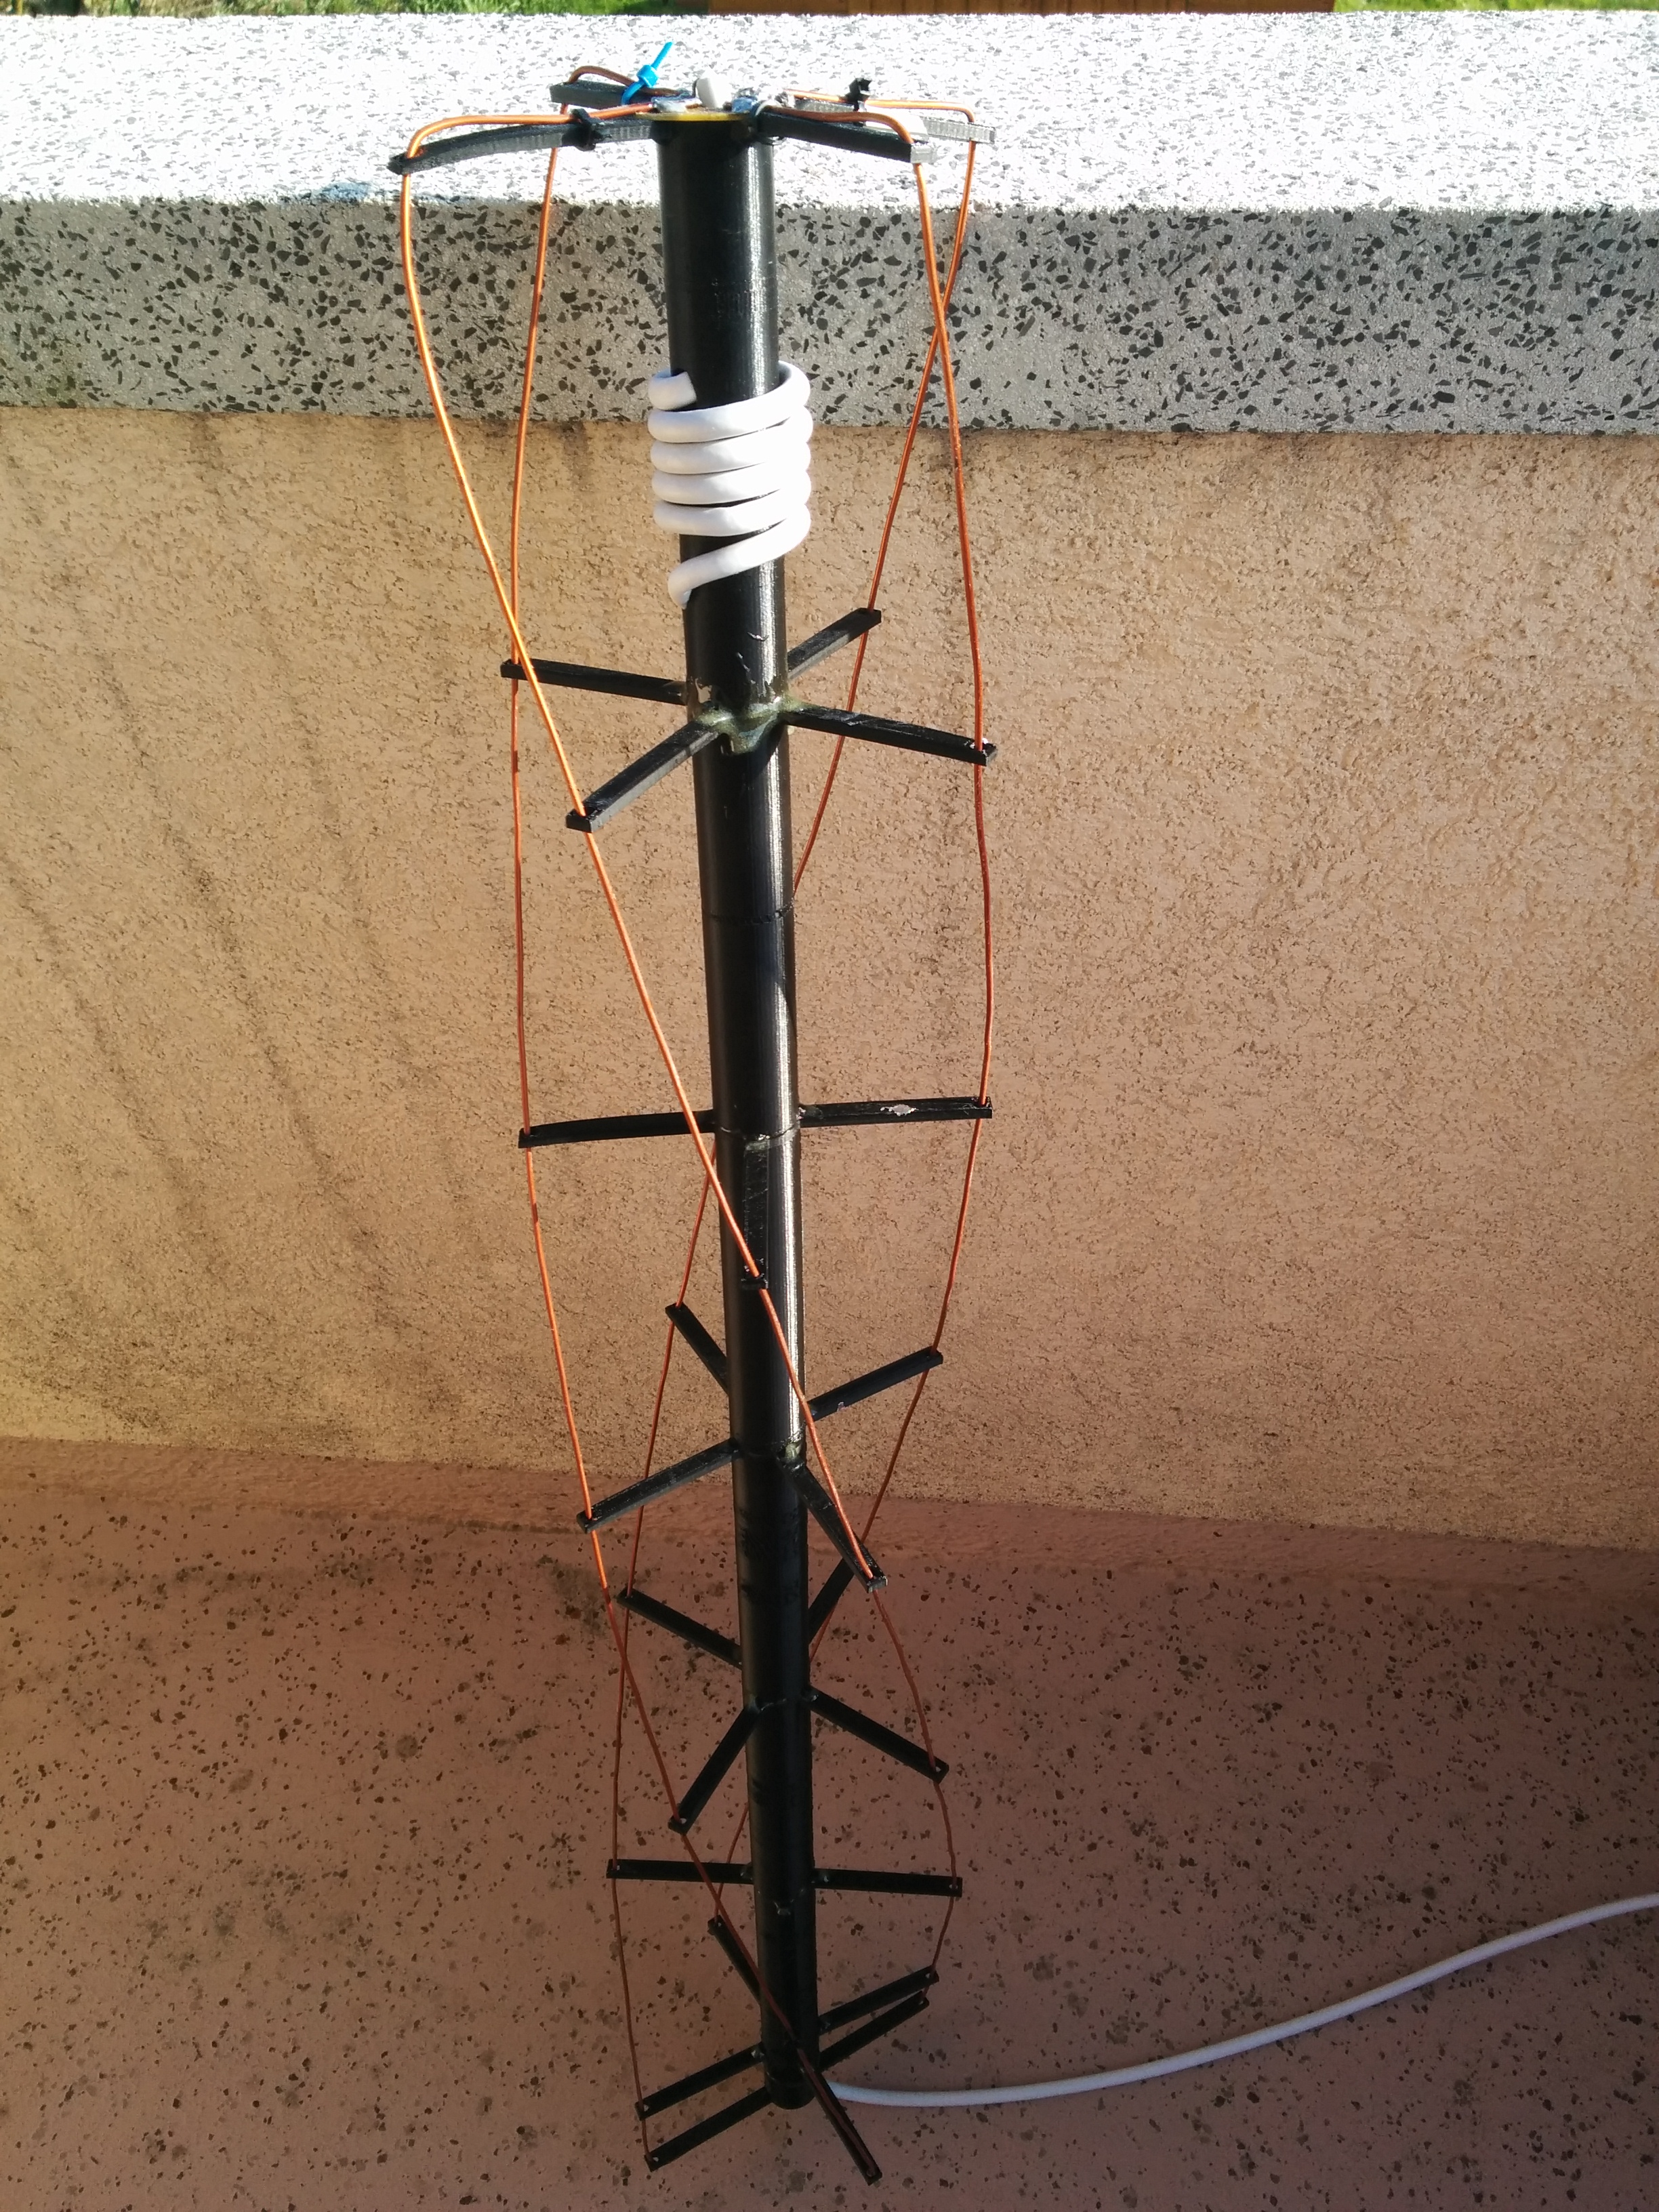 QFH 137MHz Antenna by SynarK - Thingiverse